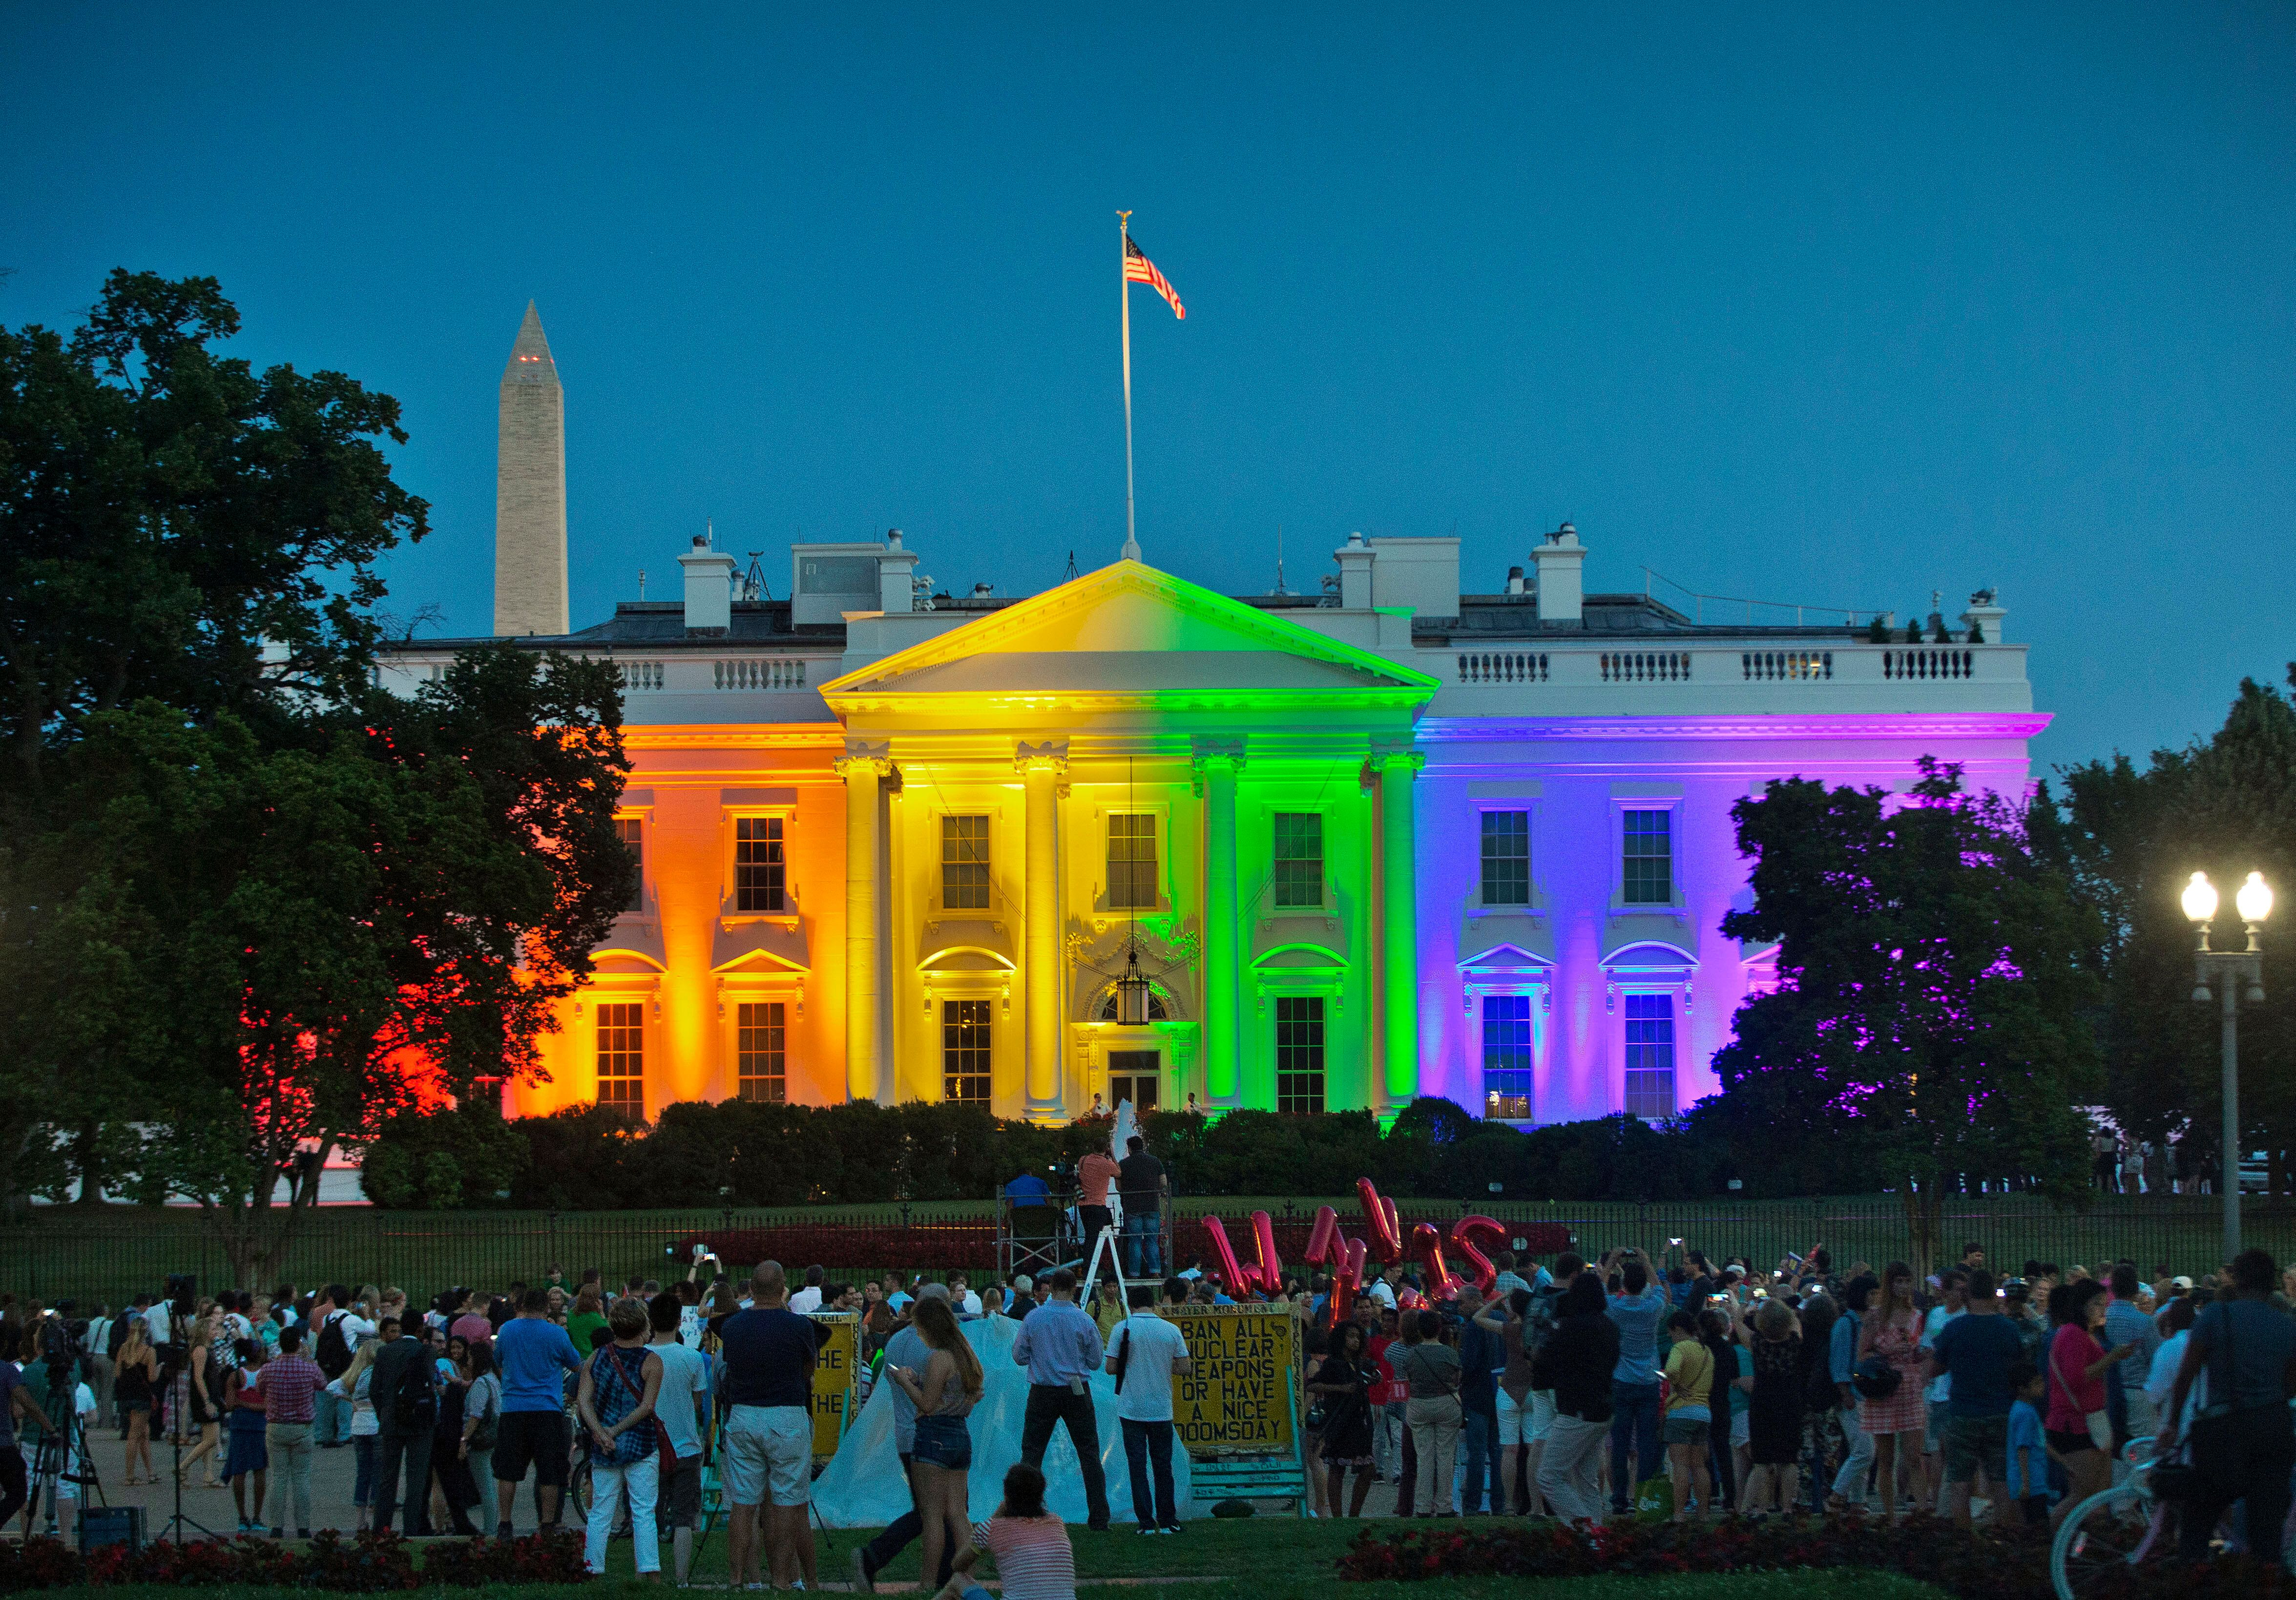 In this June 26, 2015, file photo, people gather in Lafayette Park to see the White House illuminated with rainbow colors in